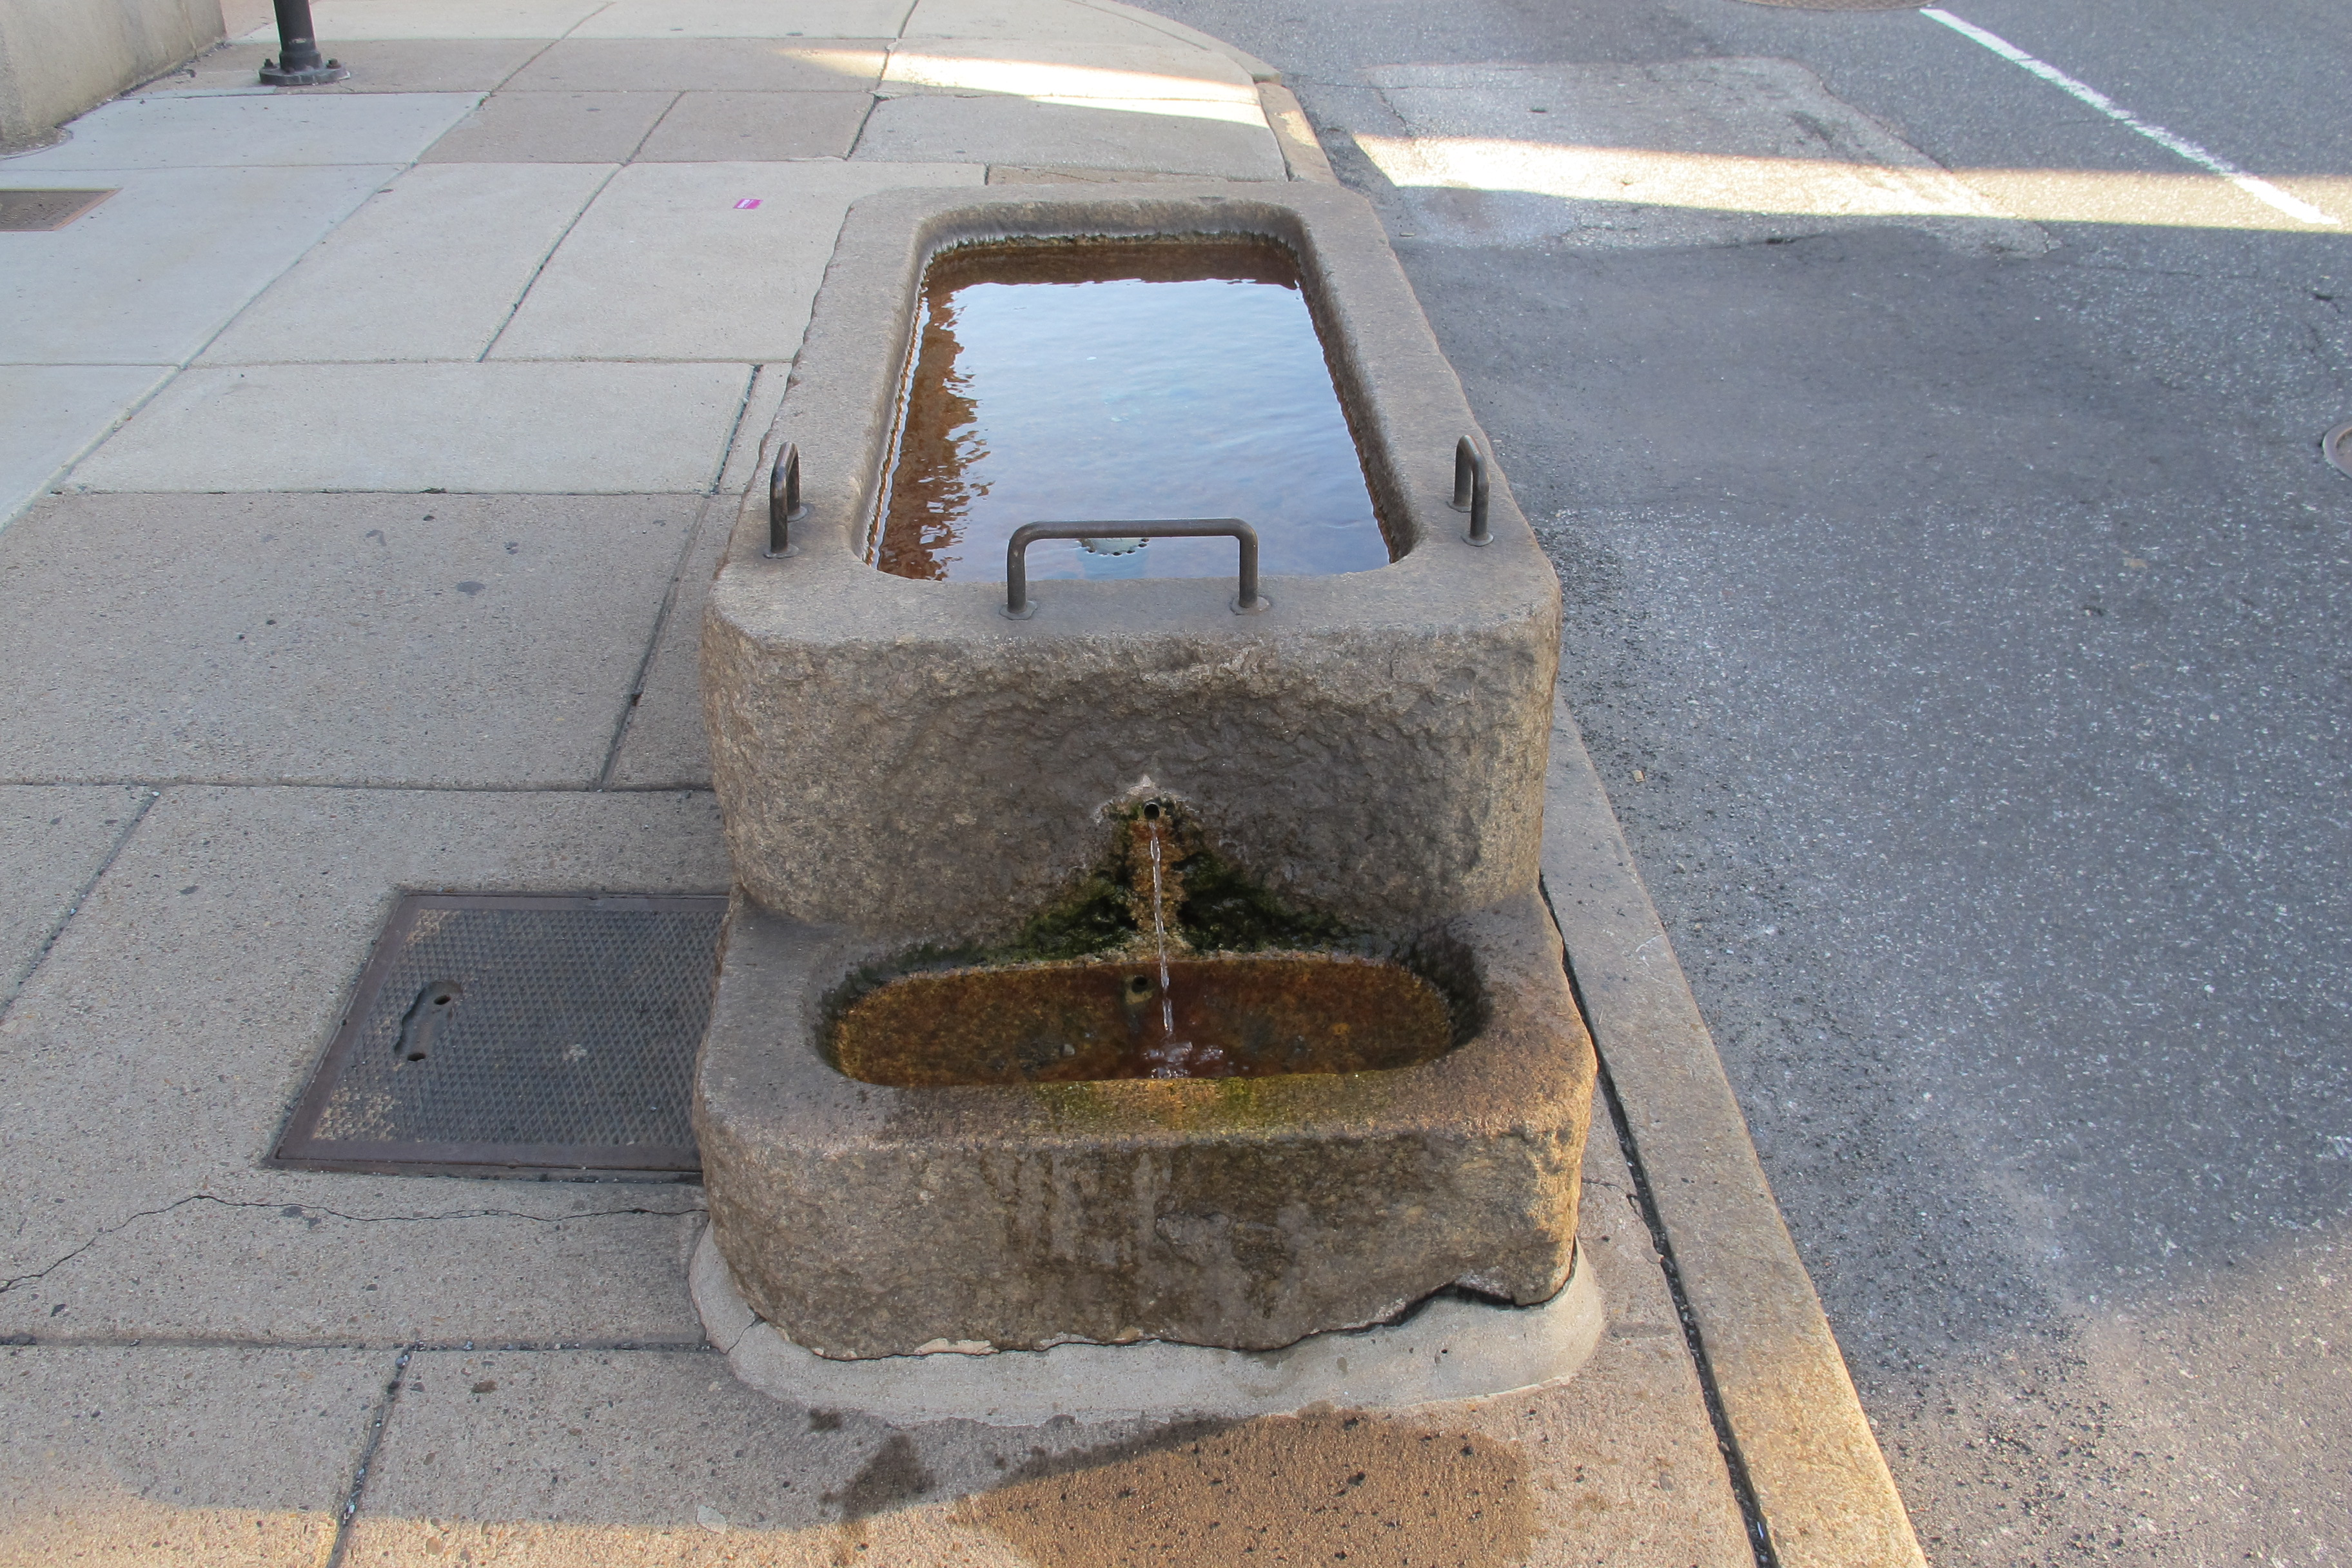 Bi-level troughs, like this one outside Fireman's Hall on North 2nd Street, allowed for smaller animals like dogs to drink from the fountains too.